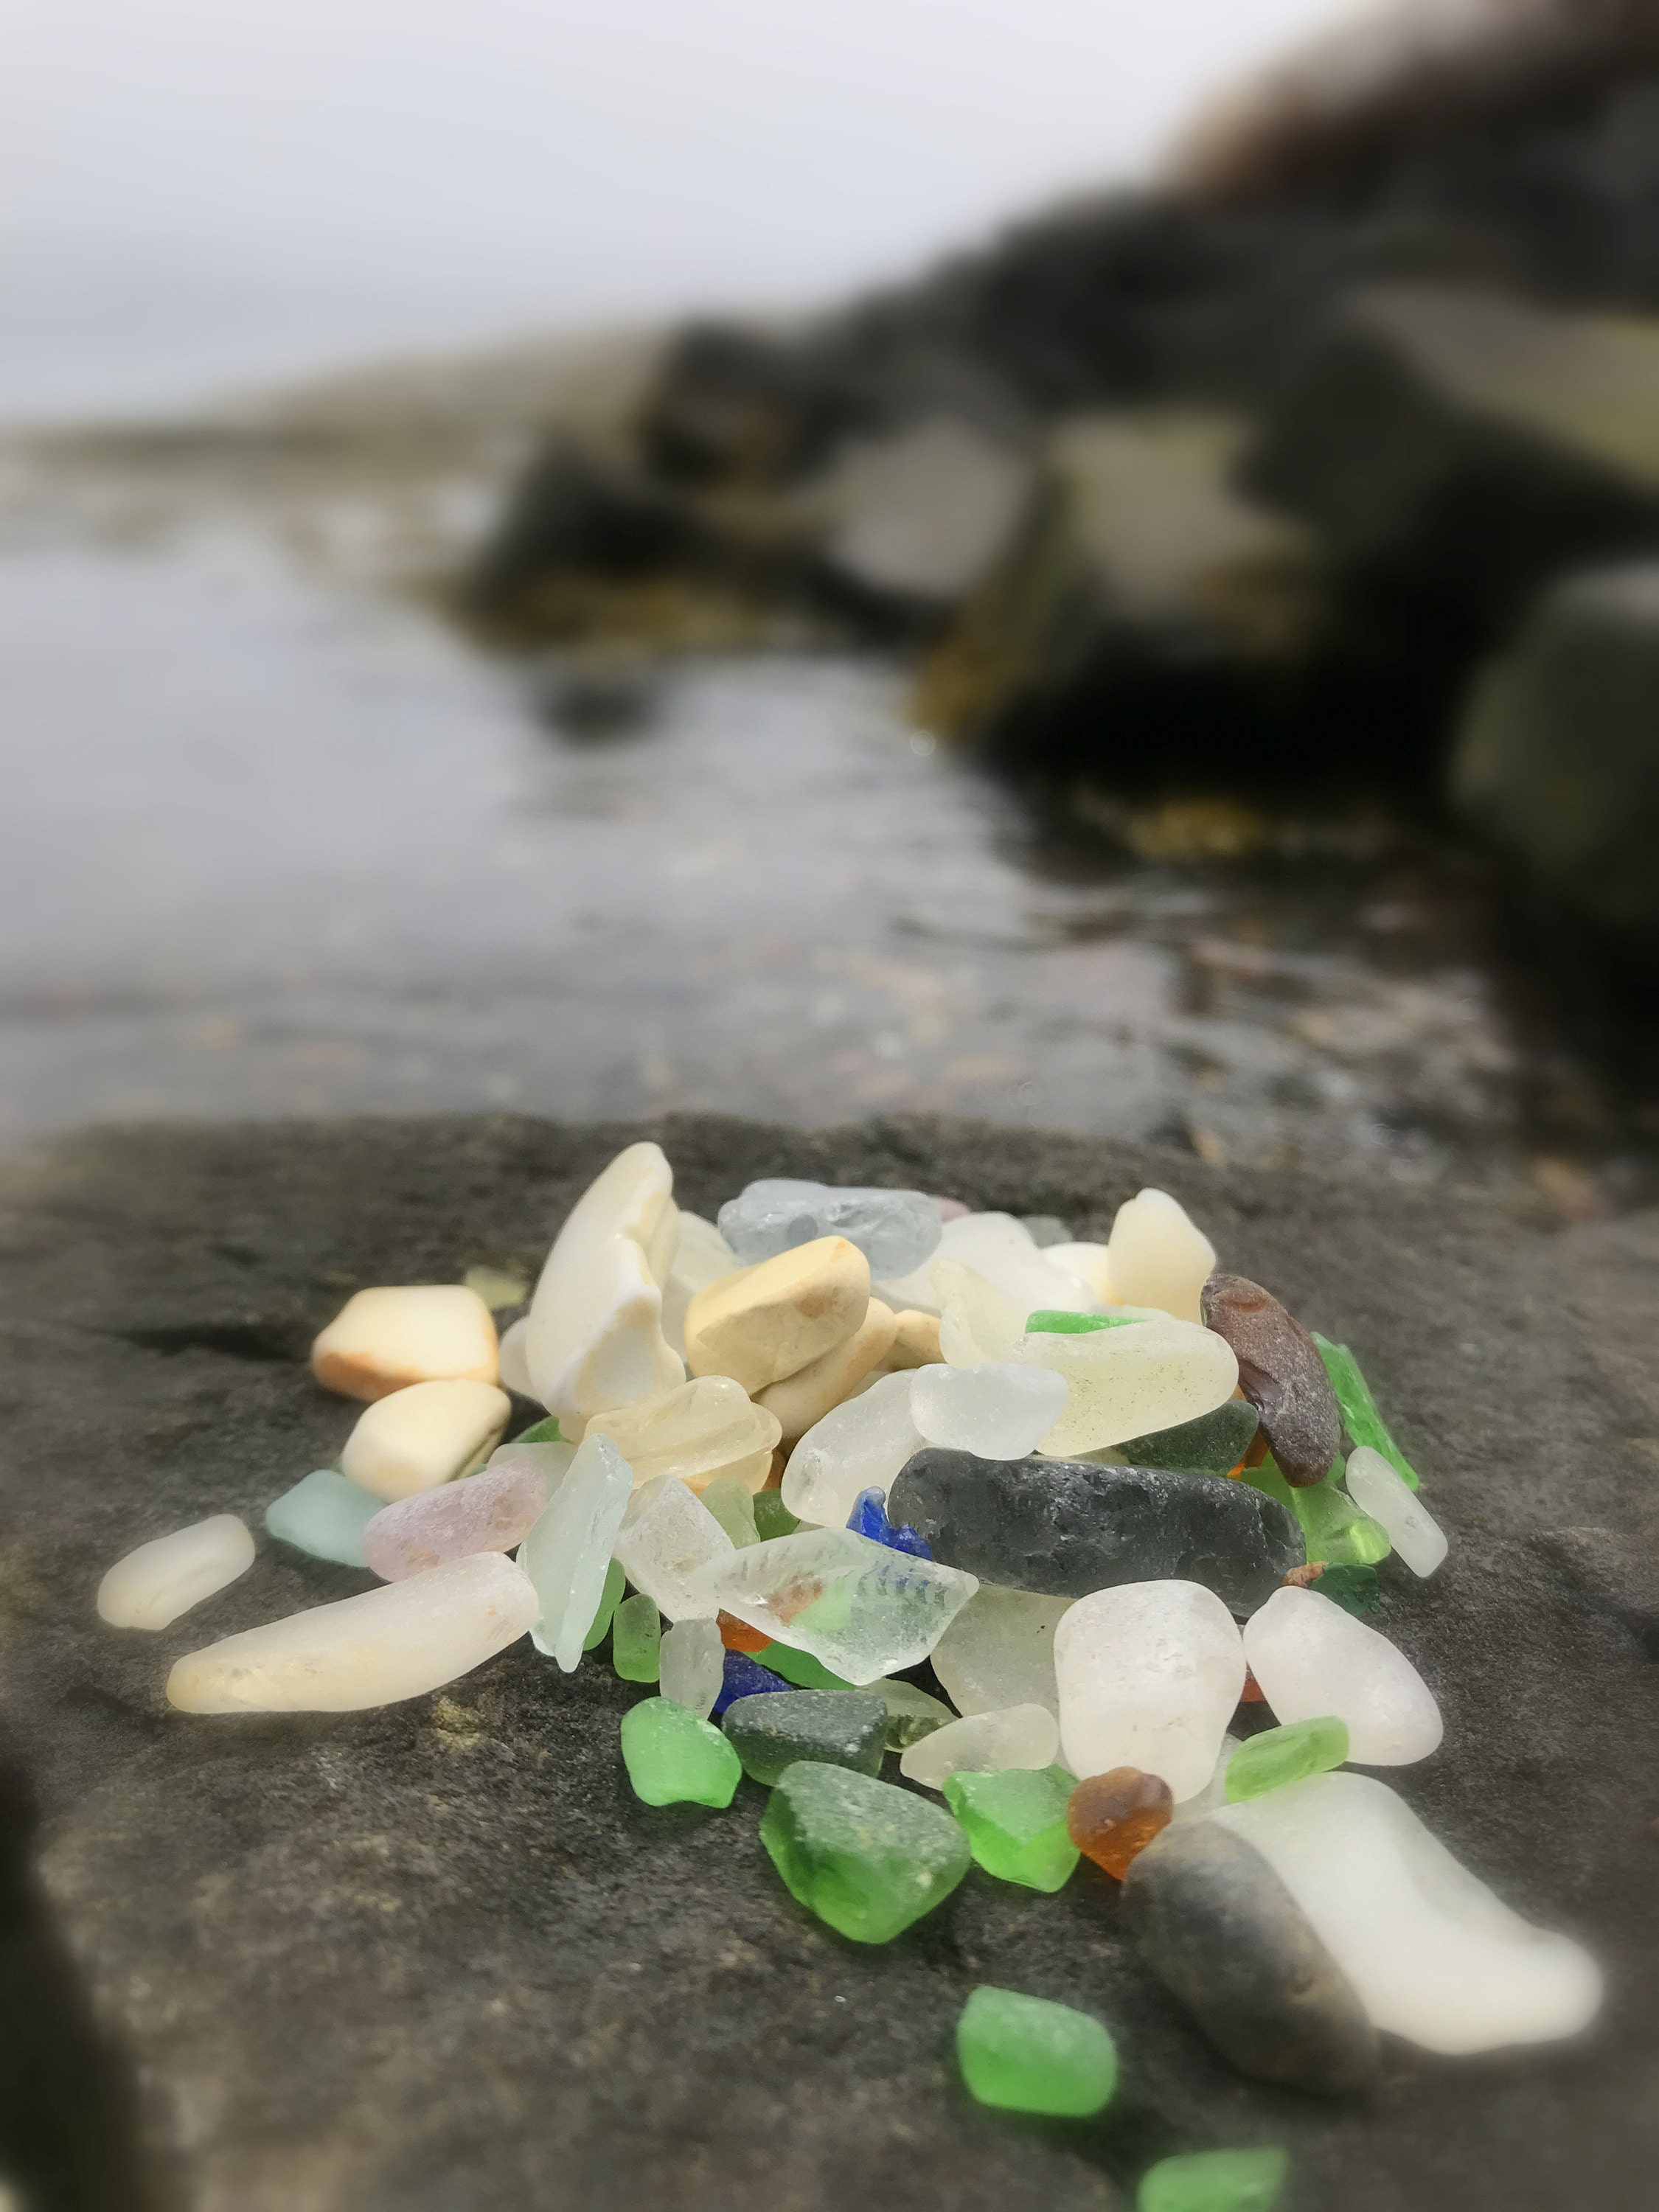 sea glass / beach glass beach on Brier Island, nova scotia